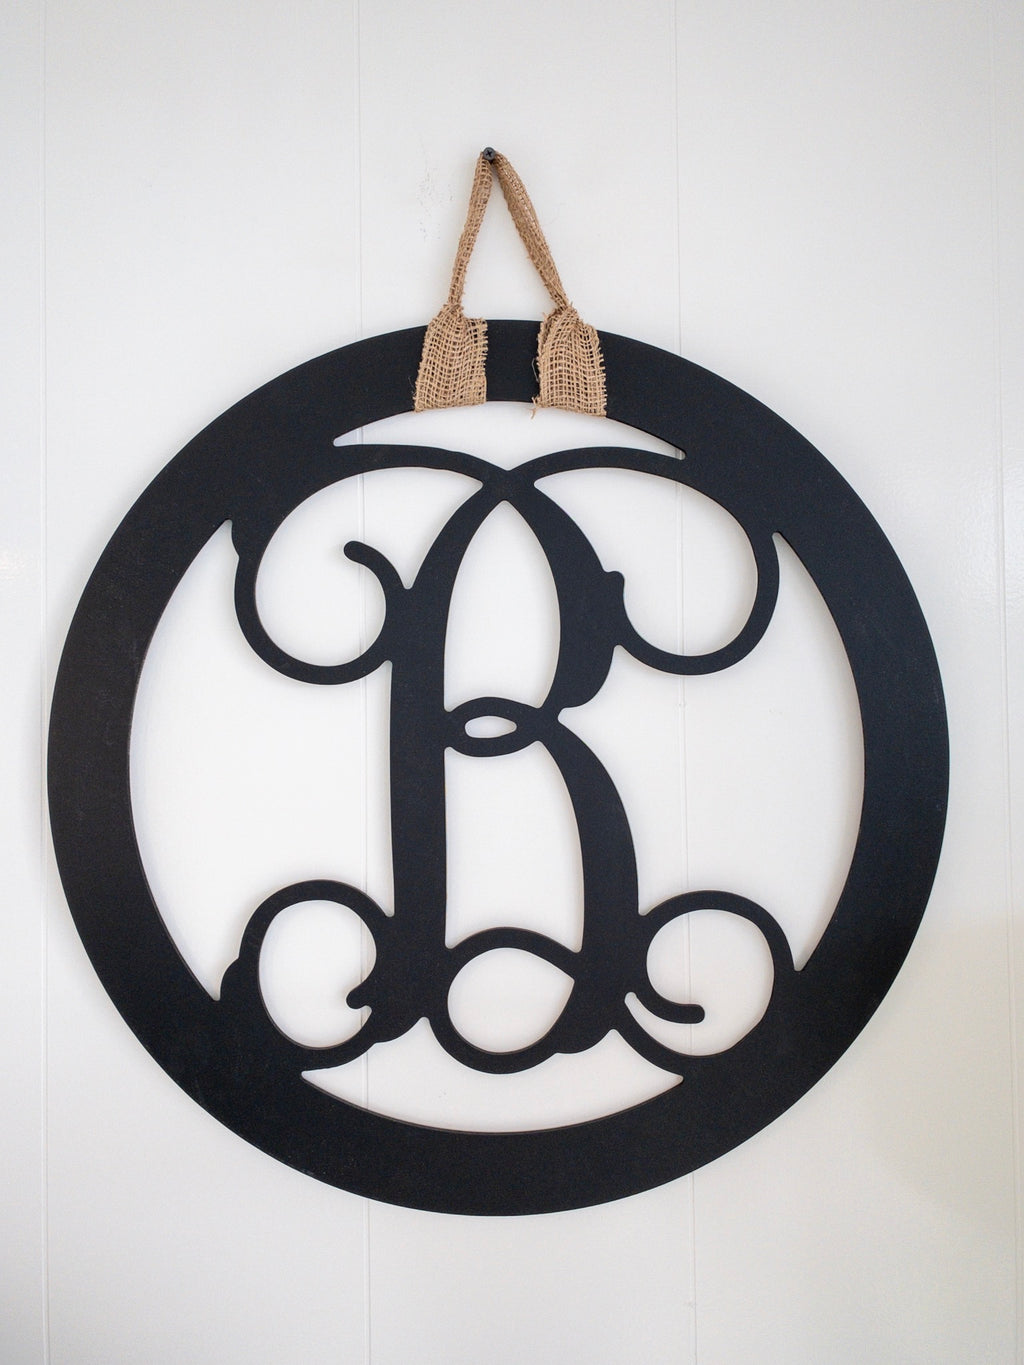 Round Initial, Wood Door Hanger - Black  *PICKUP ONLY* - Monogram Gifts